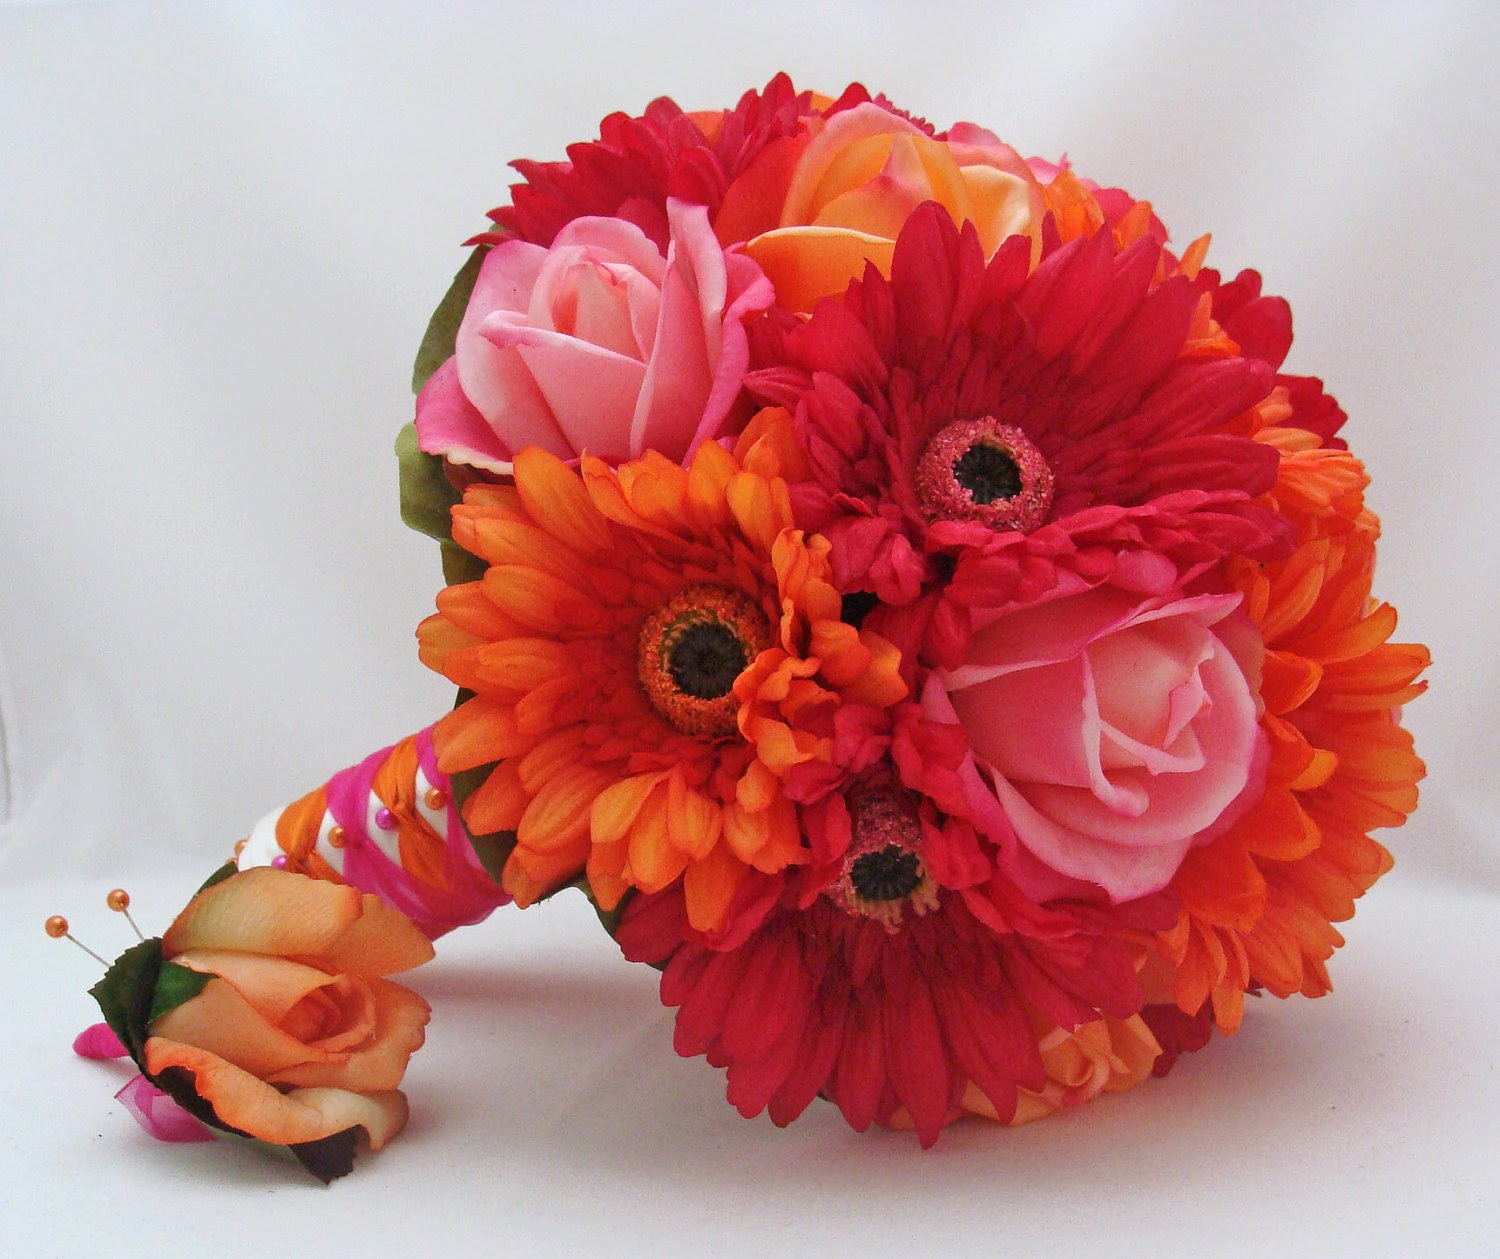 Wedding Bouquet Of Gerbera Daisies : Beautiful bridal gerbera daisy wedding bouquets